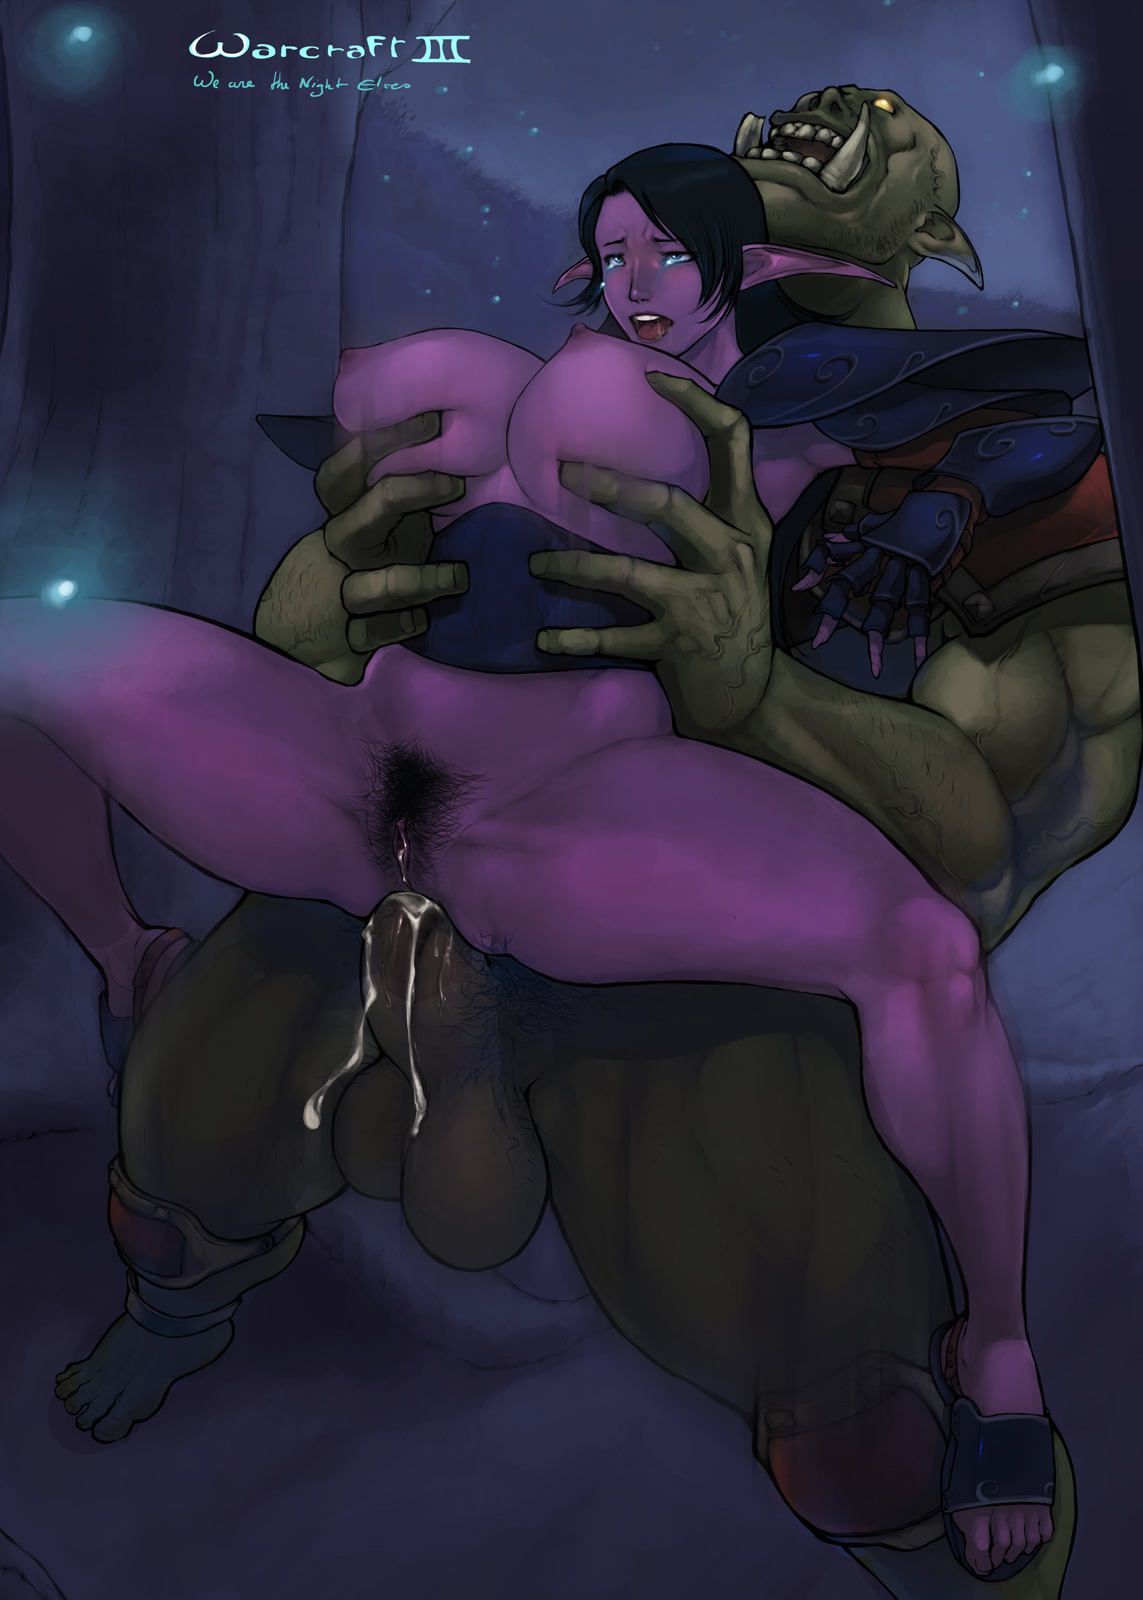 Wow night elf hentai